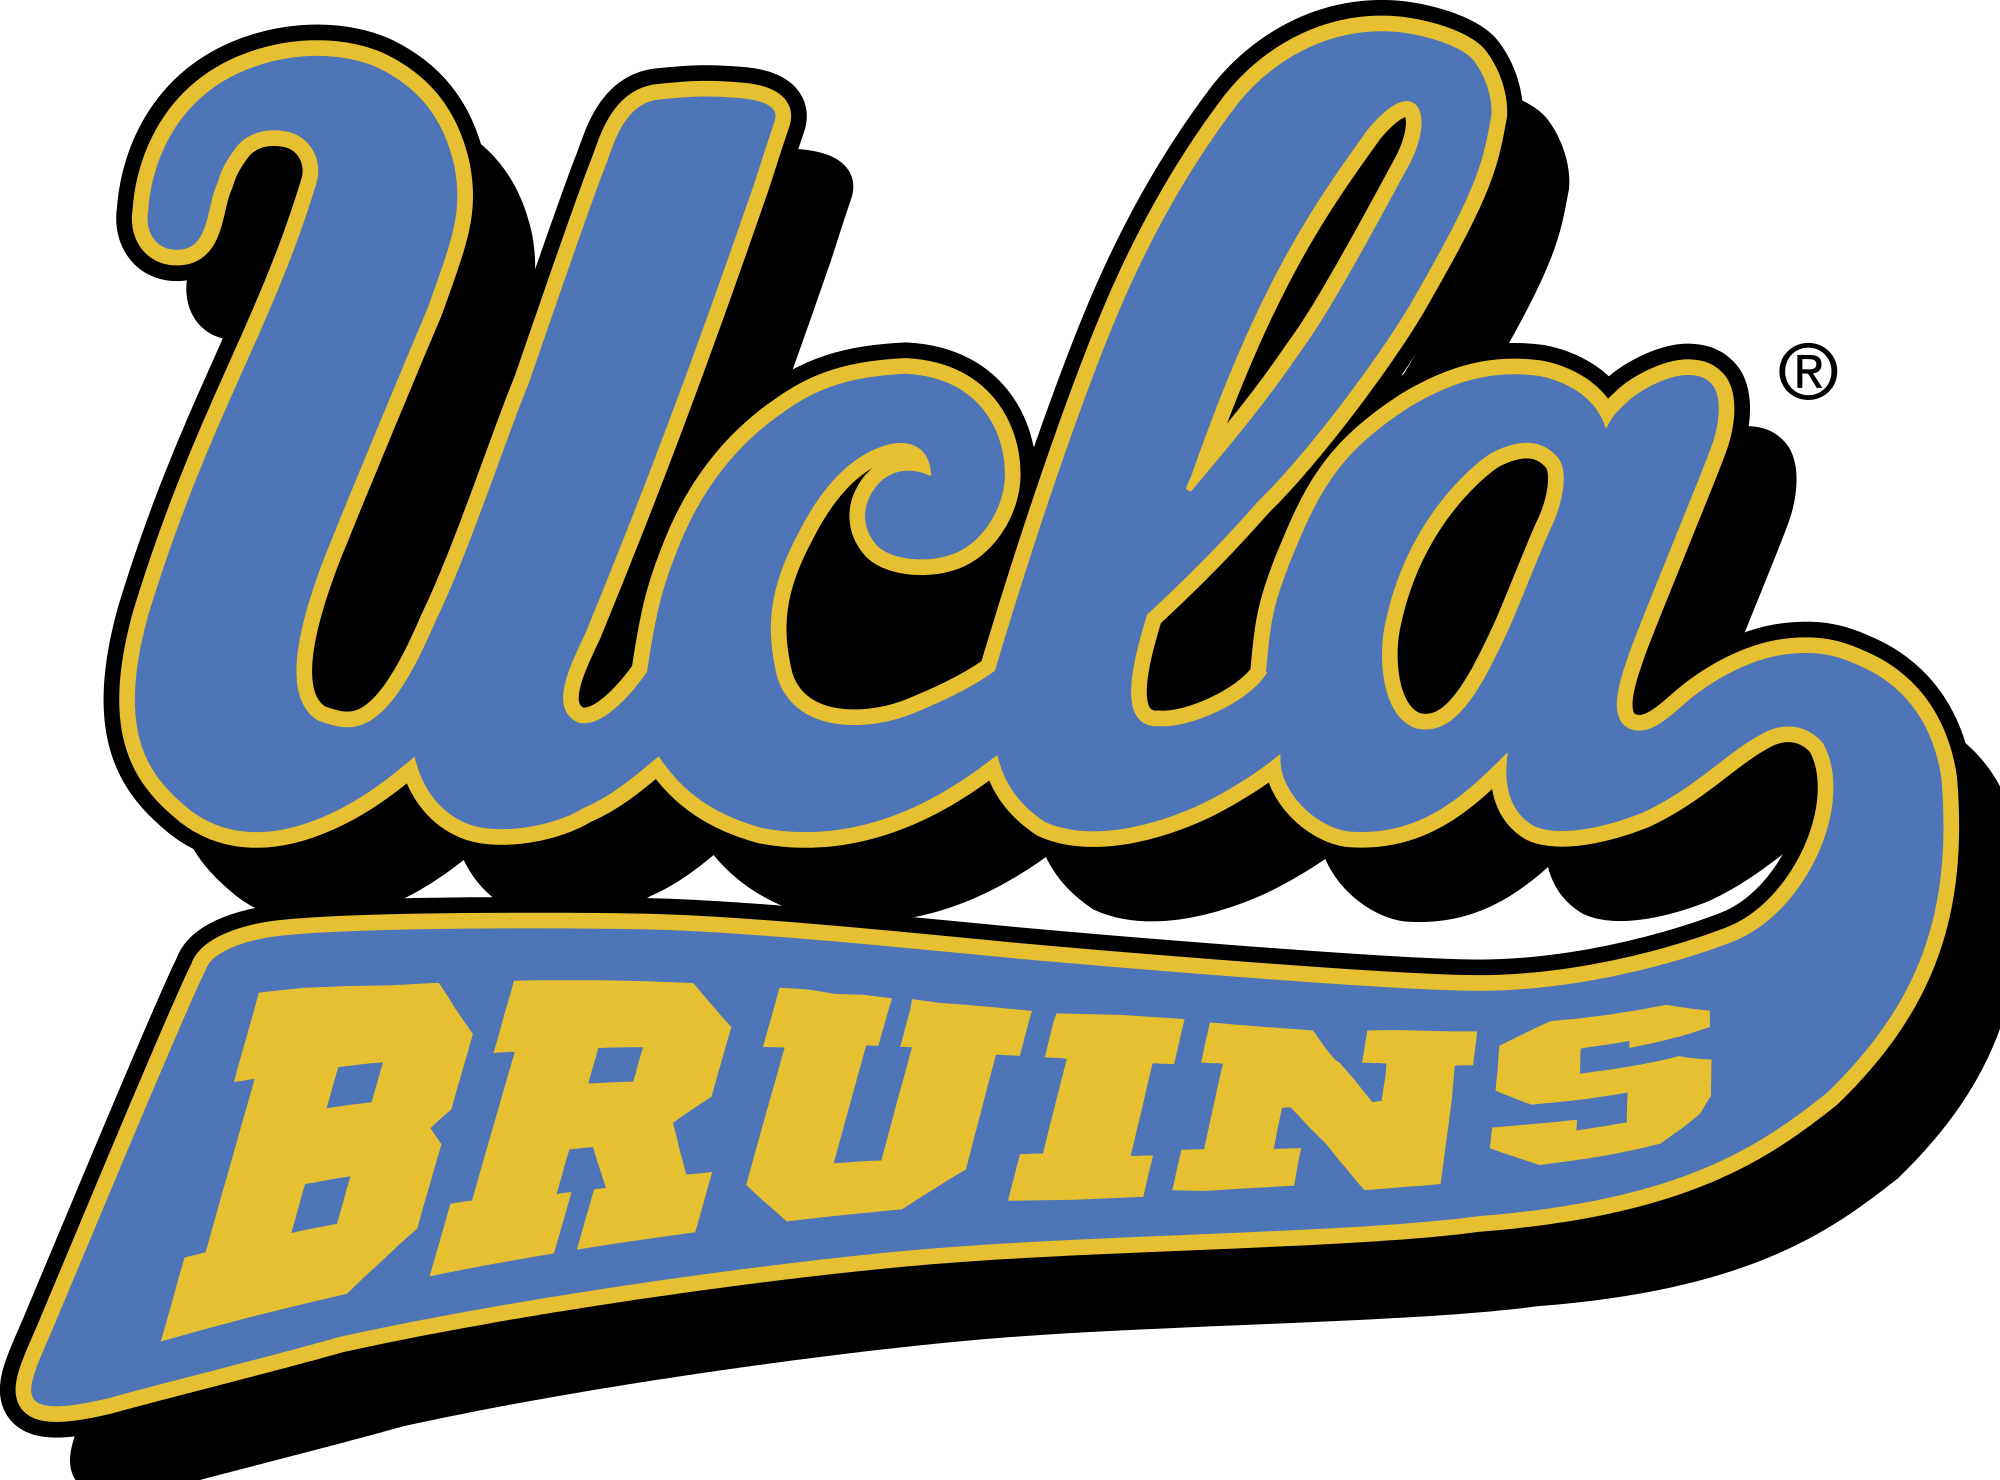 Ucla logo clip art clip art transparent stock 10 UCLA Bruins 2015 Preview – ESPN 960 Sports clip art transparent stock